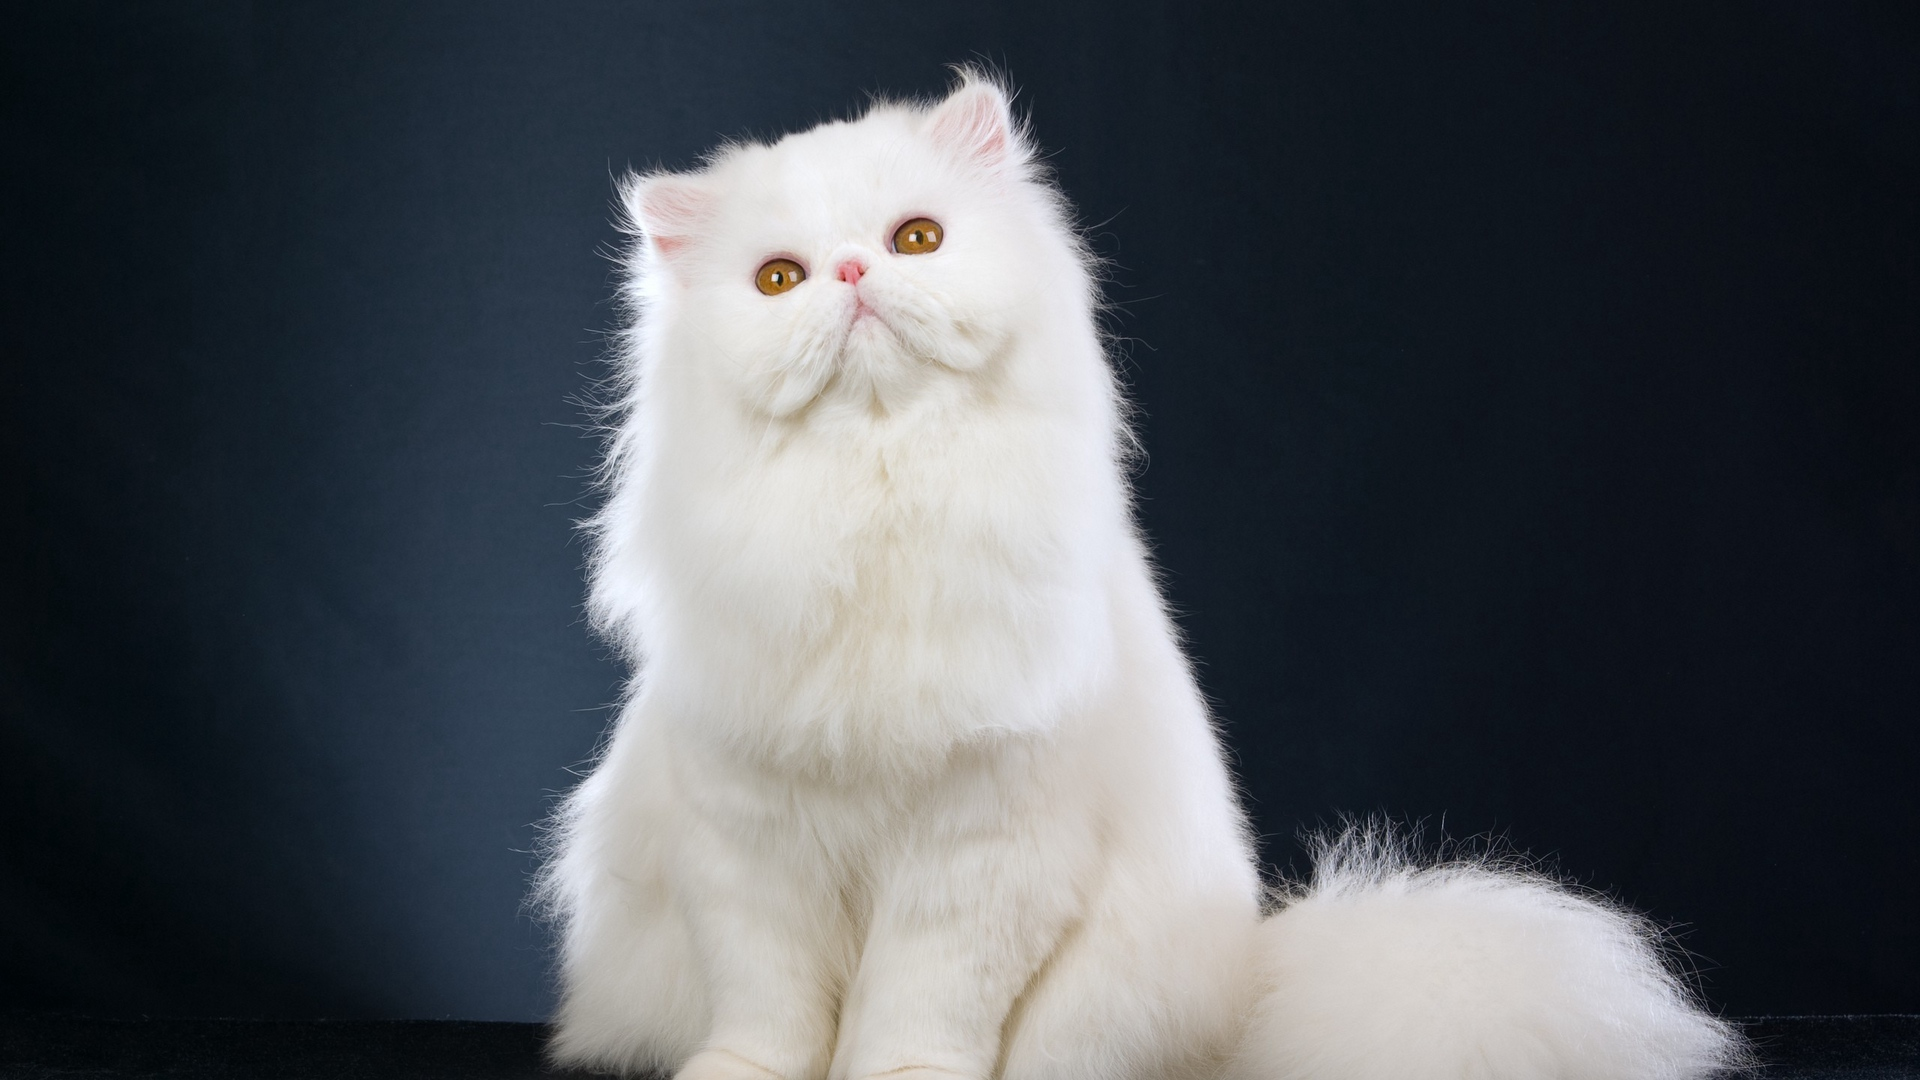 cute cat photos hd for mobile 1